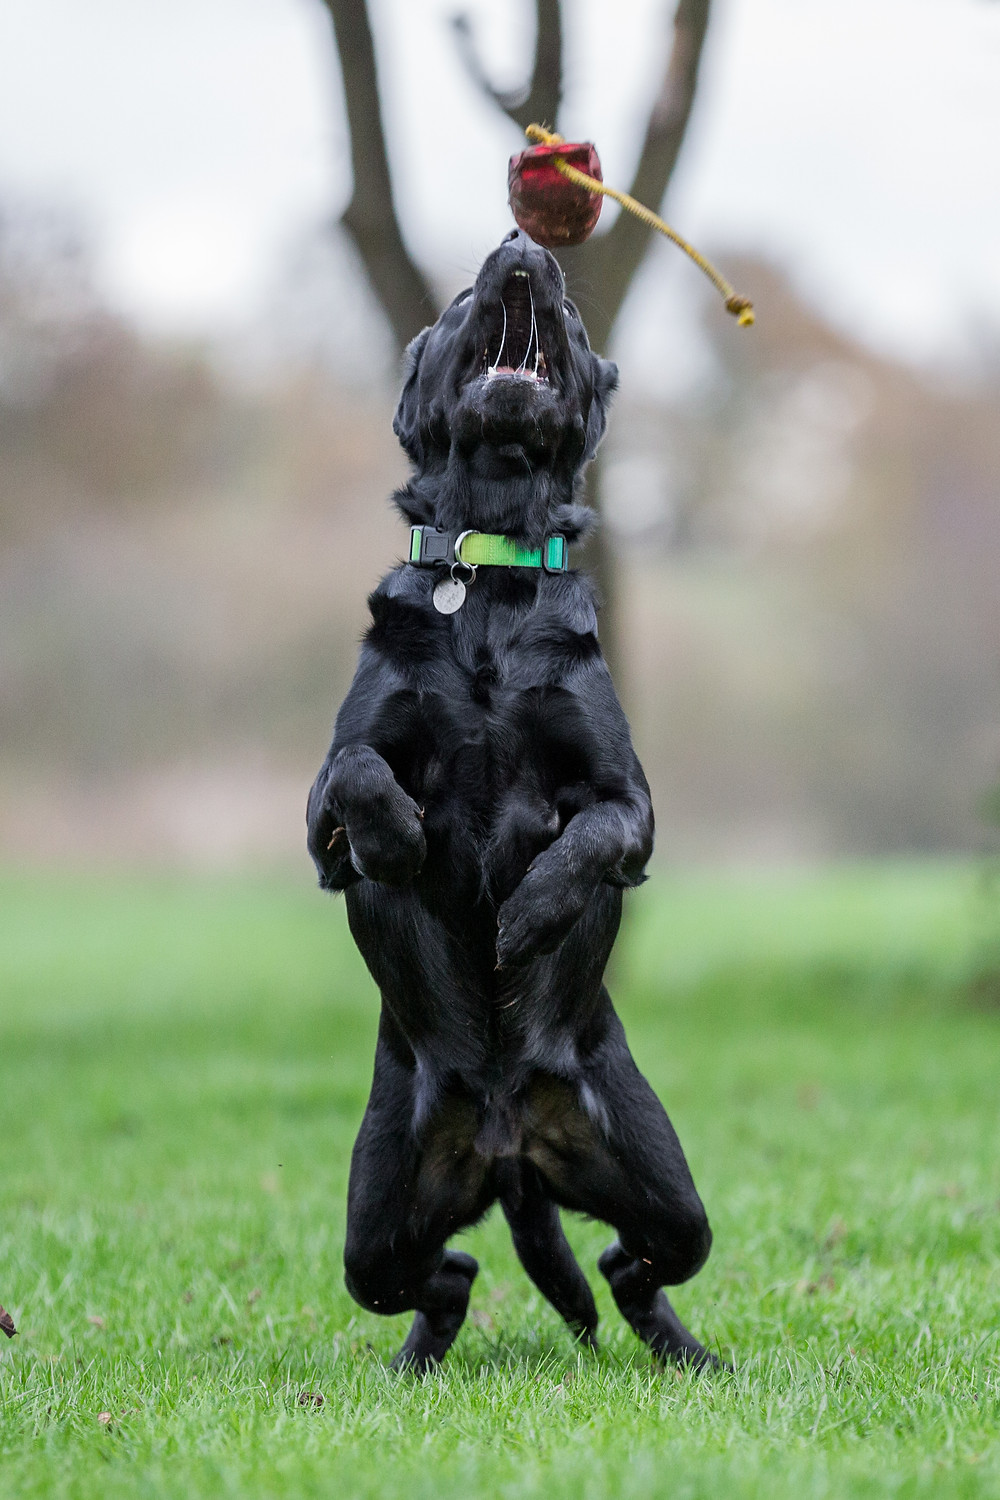 Dog photography in London. Logi the labrador jumping for his toy